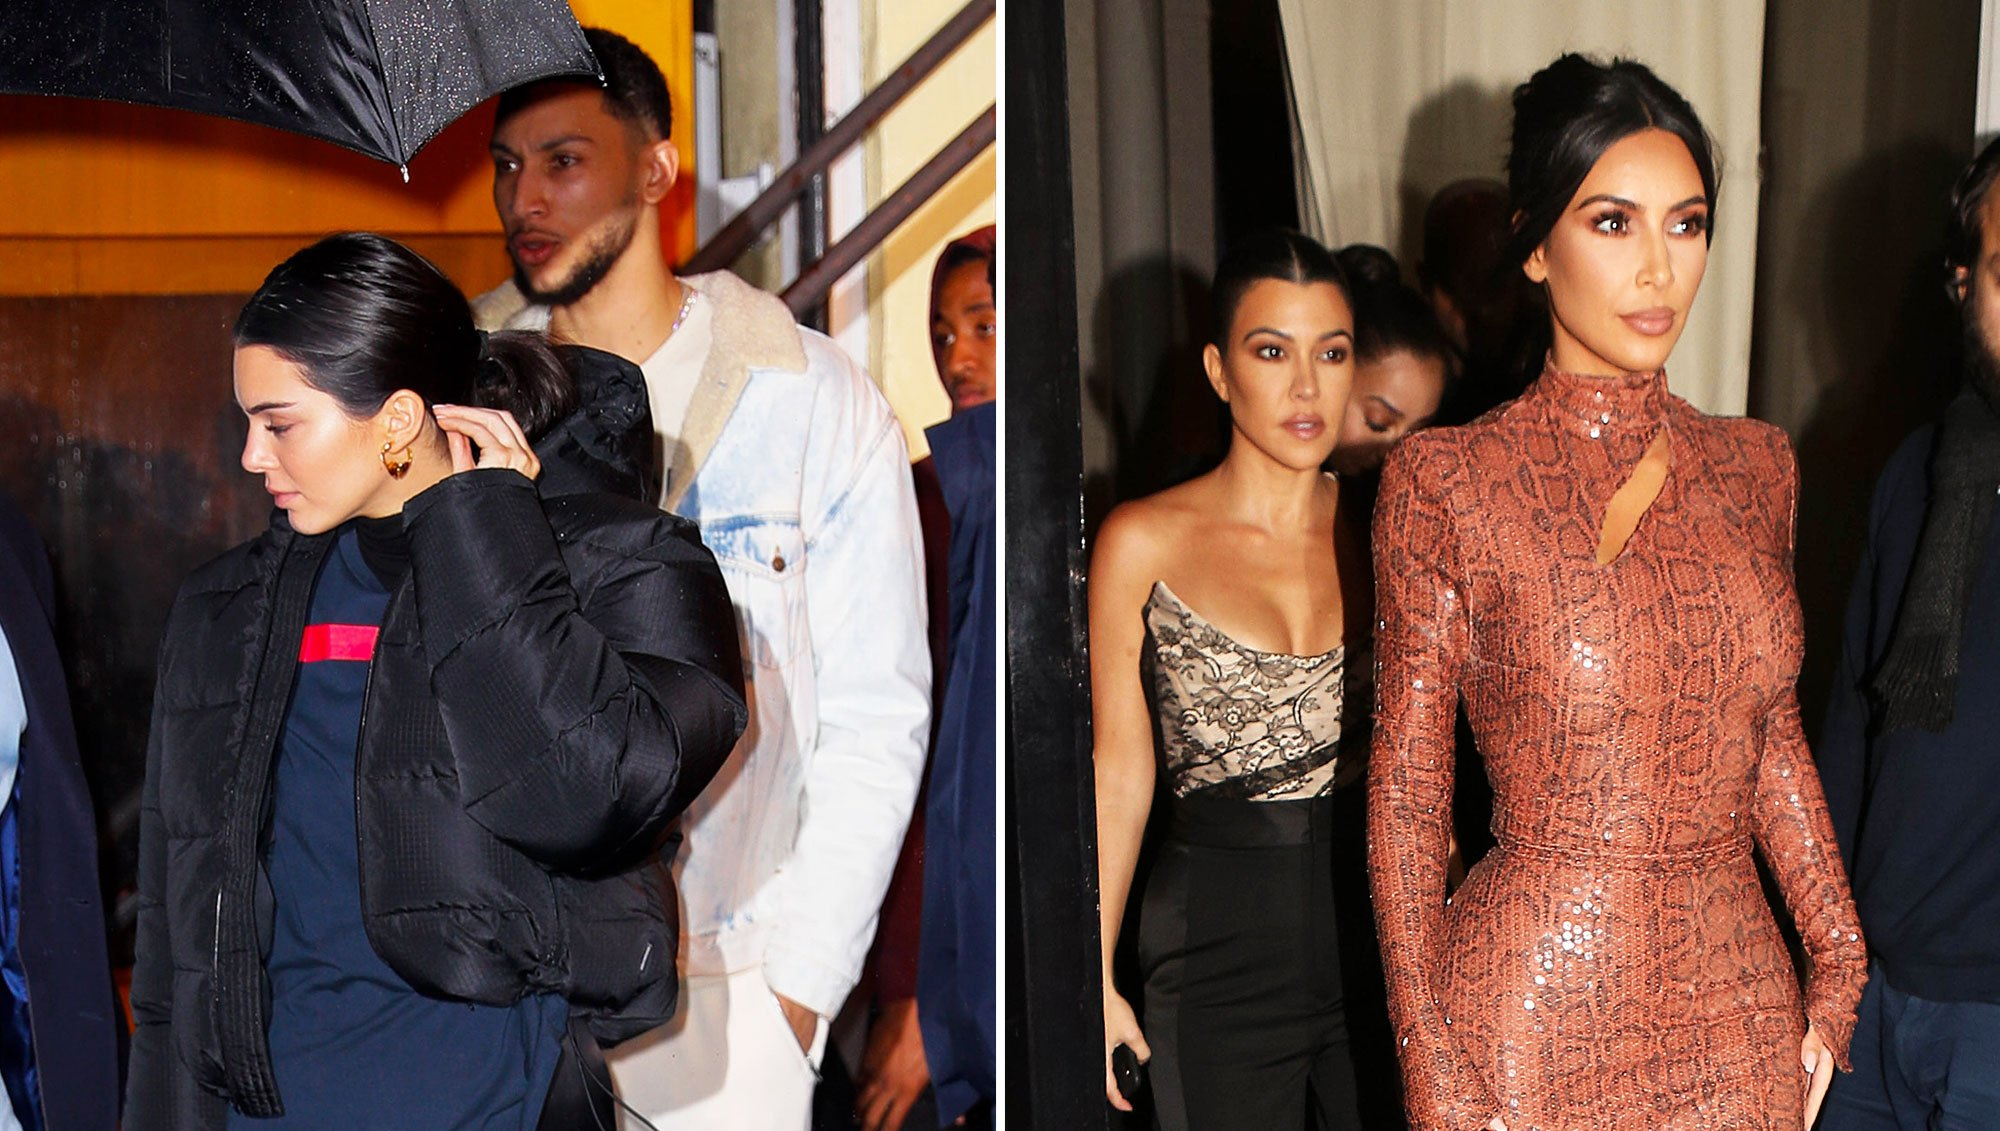 Kendall Jenner and Ben Simmons Dine Out With Kim and Kourtney Kardashian in NYC